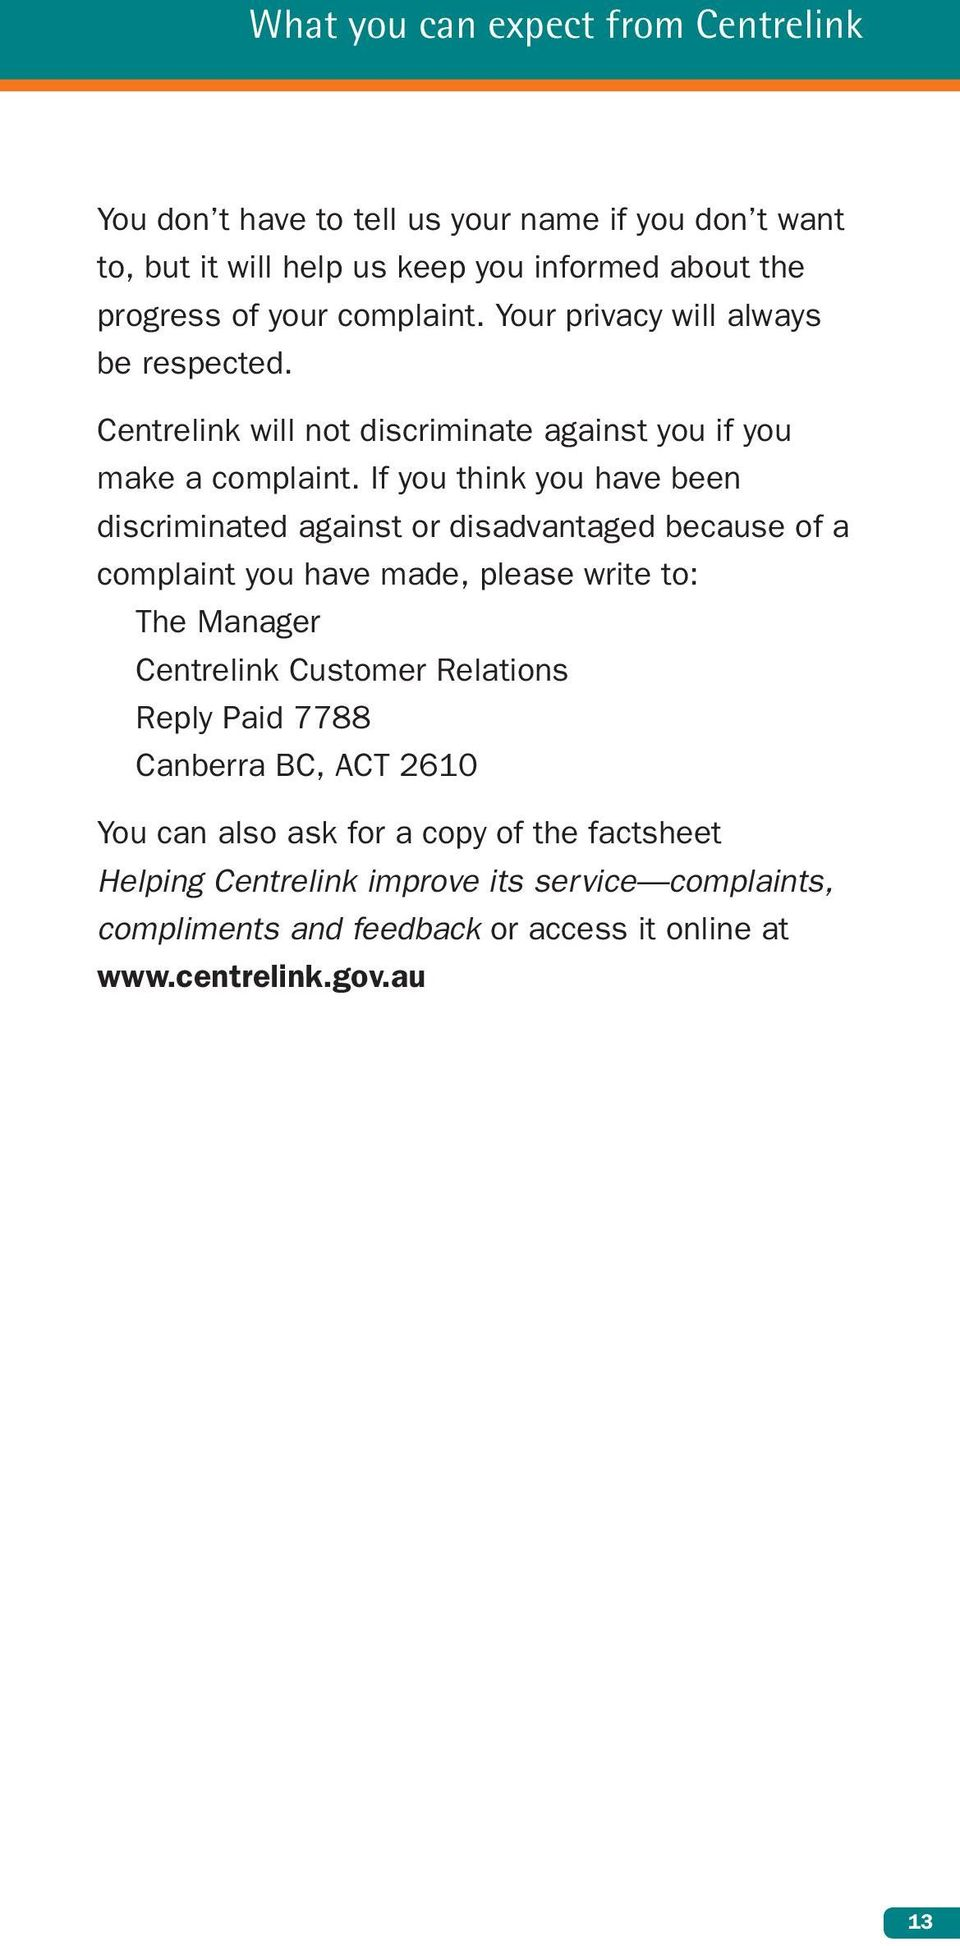 If you think you have been discriminated against or disadvantaged because of a complaint you have made, please write to: The Manager Centrelink Customer